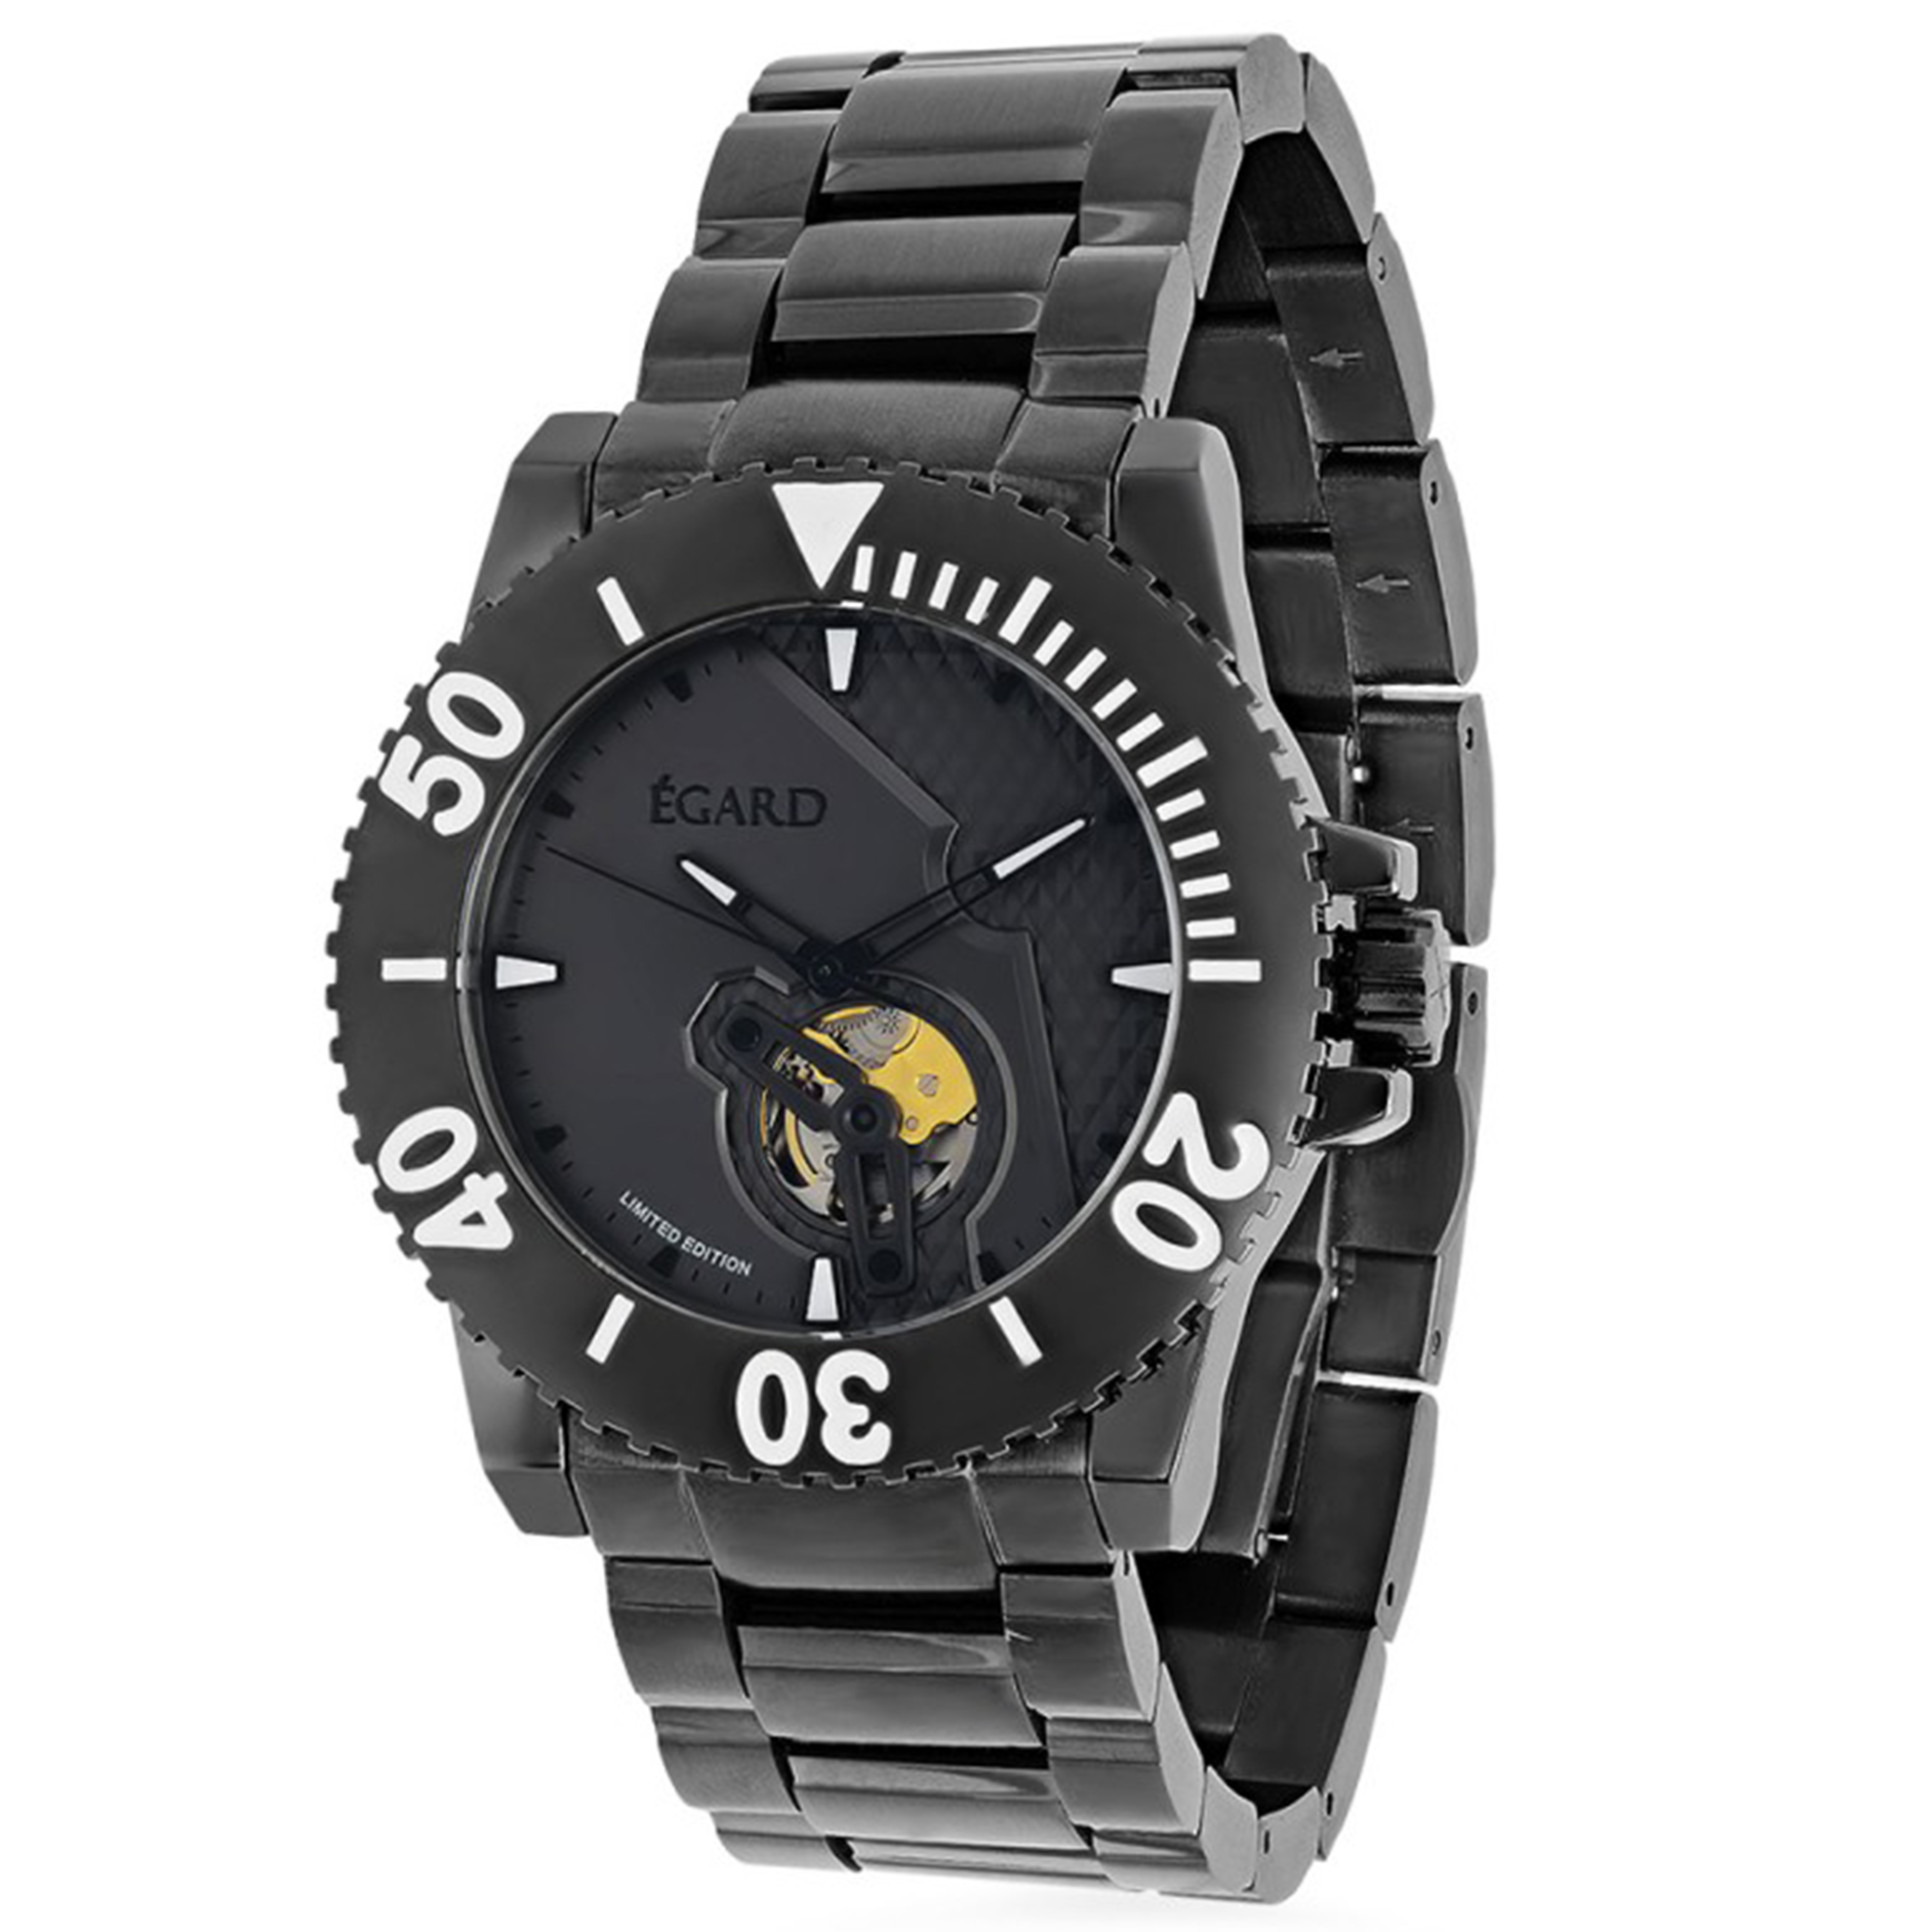 Egard WCH-CV175-C146 Egard Limited Edition Civil Automatic Open Heart Gunmetal Black Rubber Strap